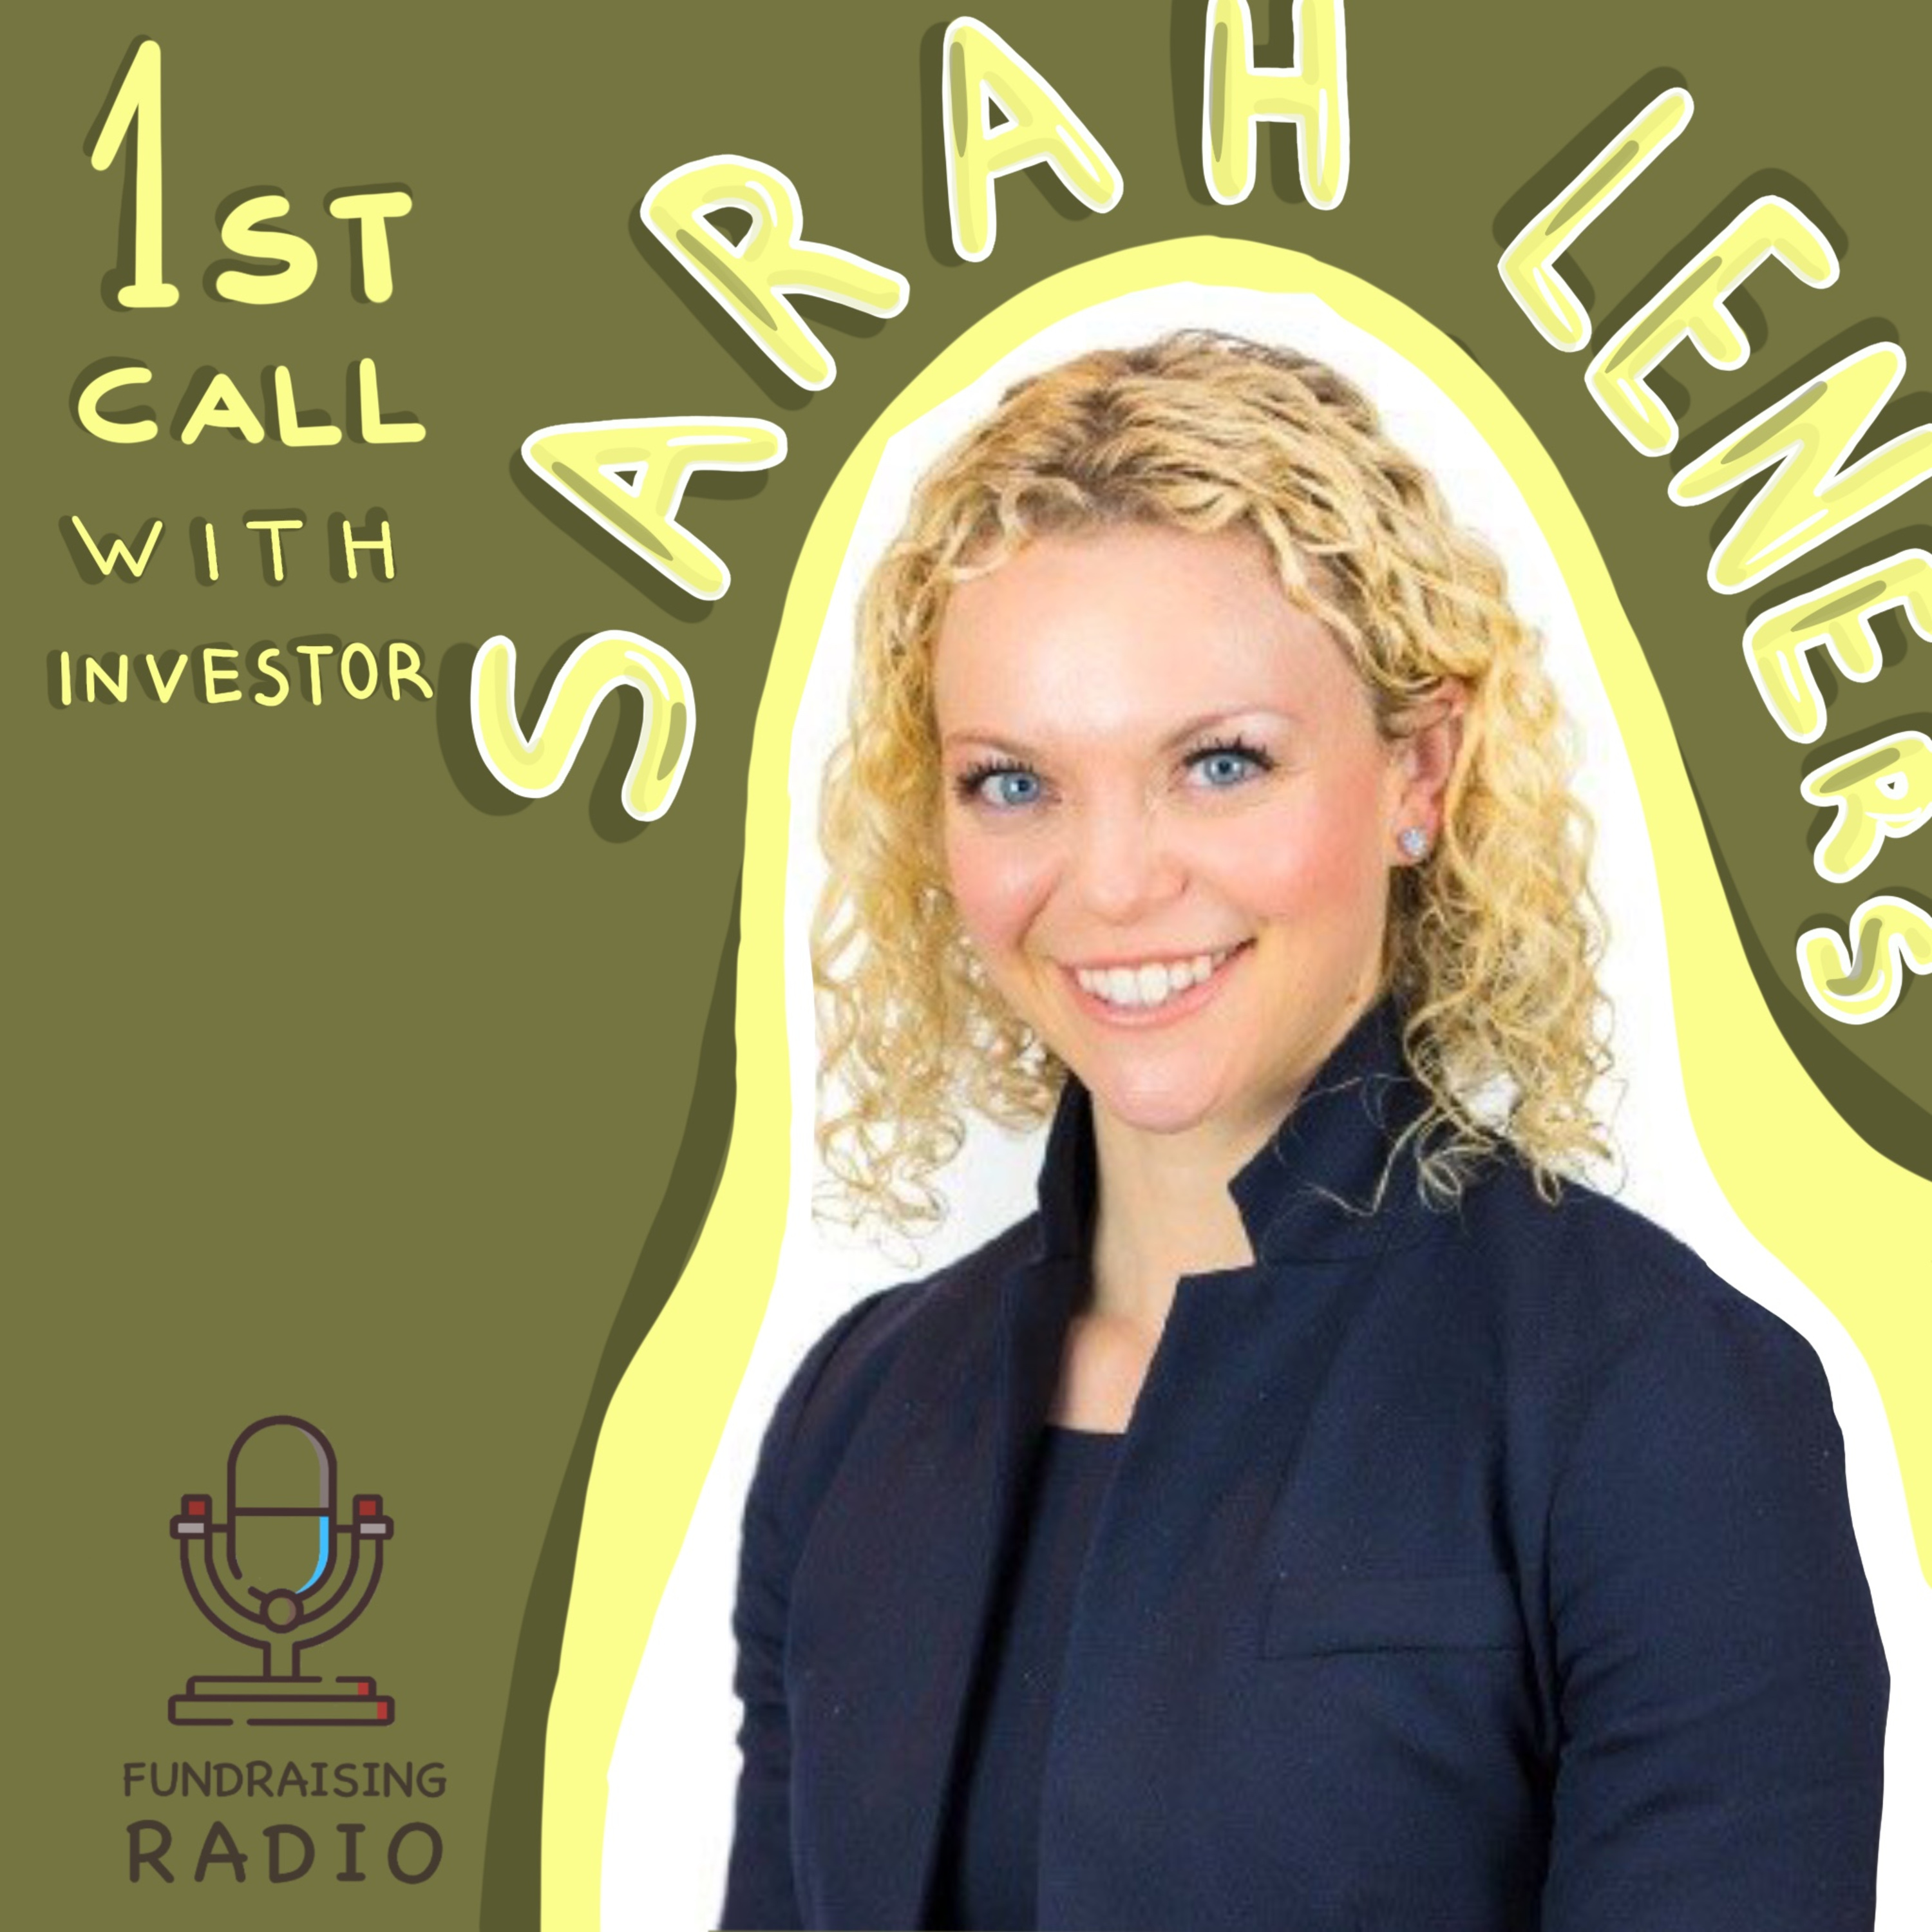 Your first call with investors - how to not butcher it and how to get one? By Sarah Leners.